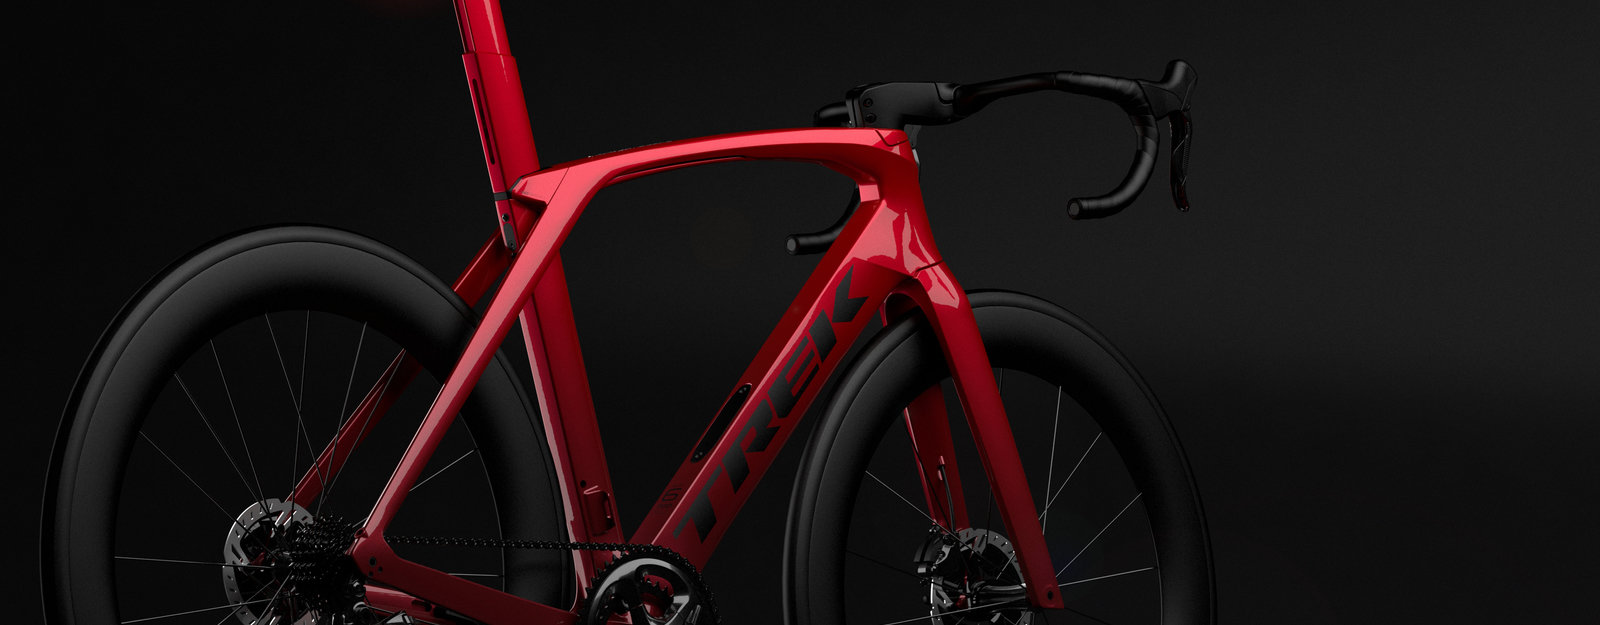 9351f4762e7 The design story behind the 2019 Trek Madone SLR - Core77